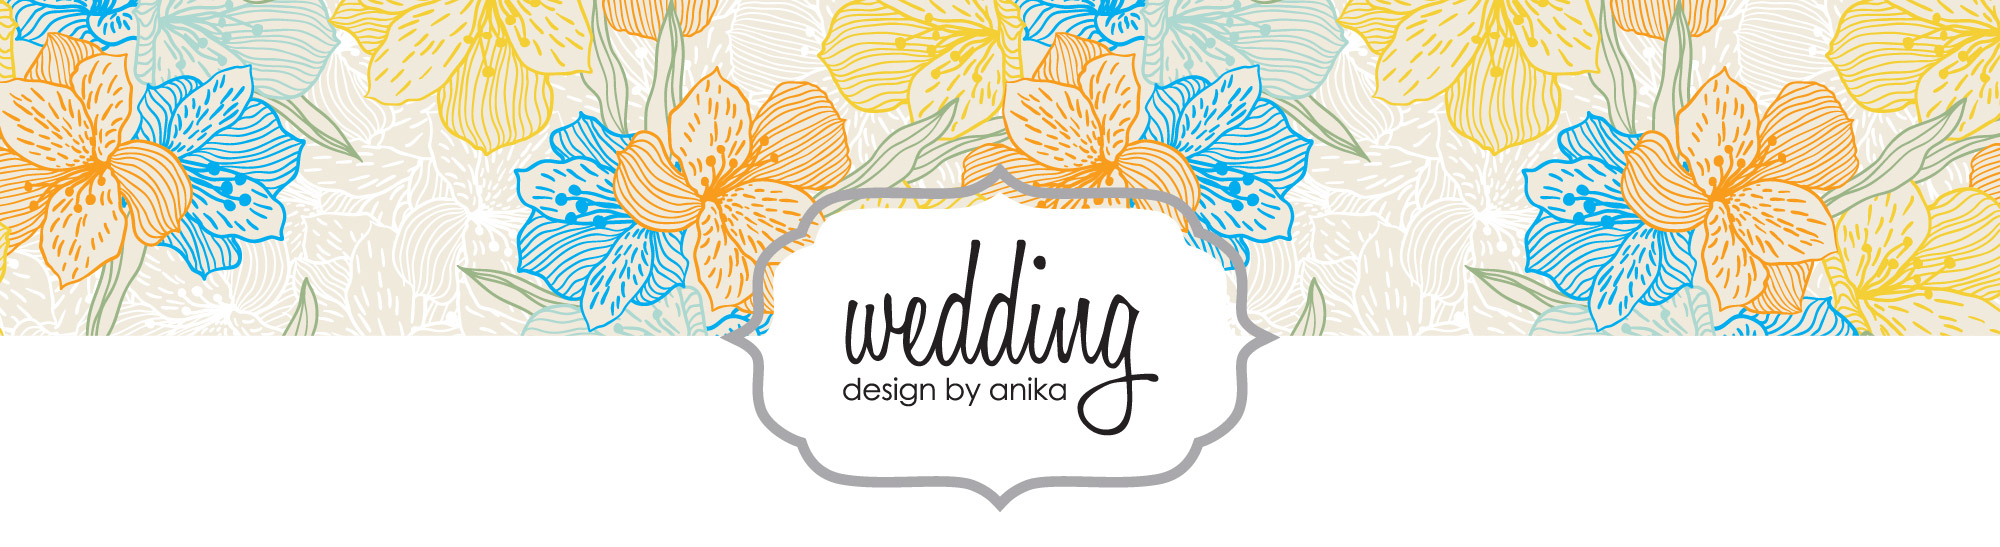 headerimageswedding-03